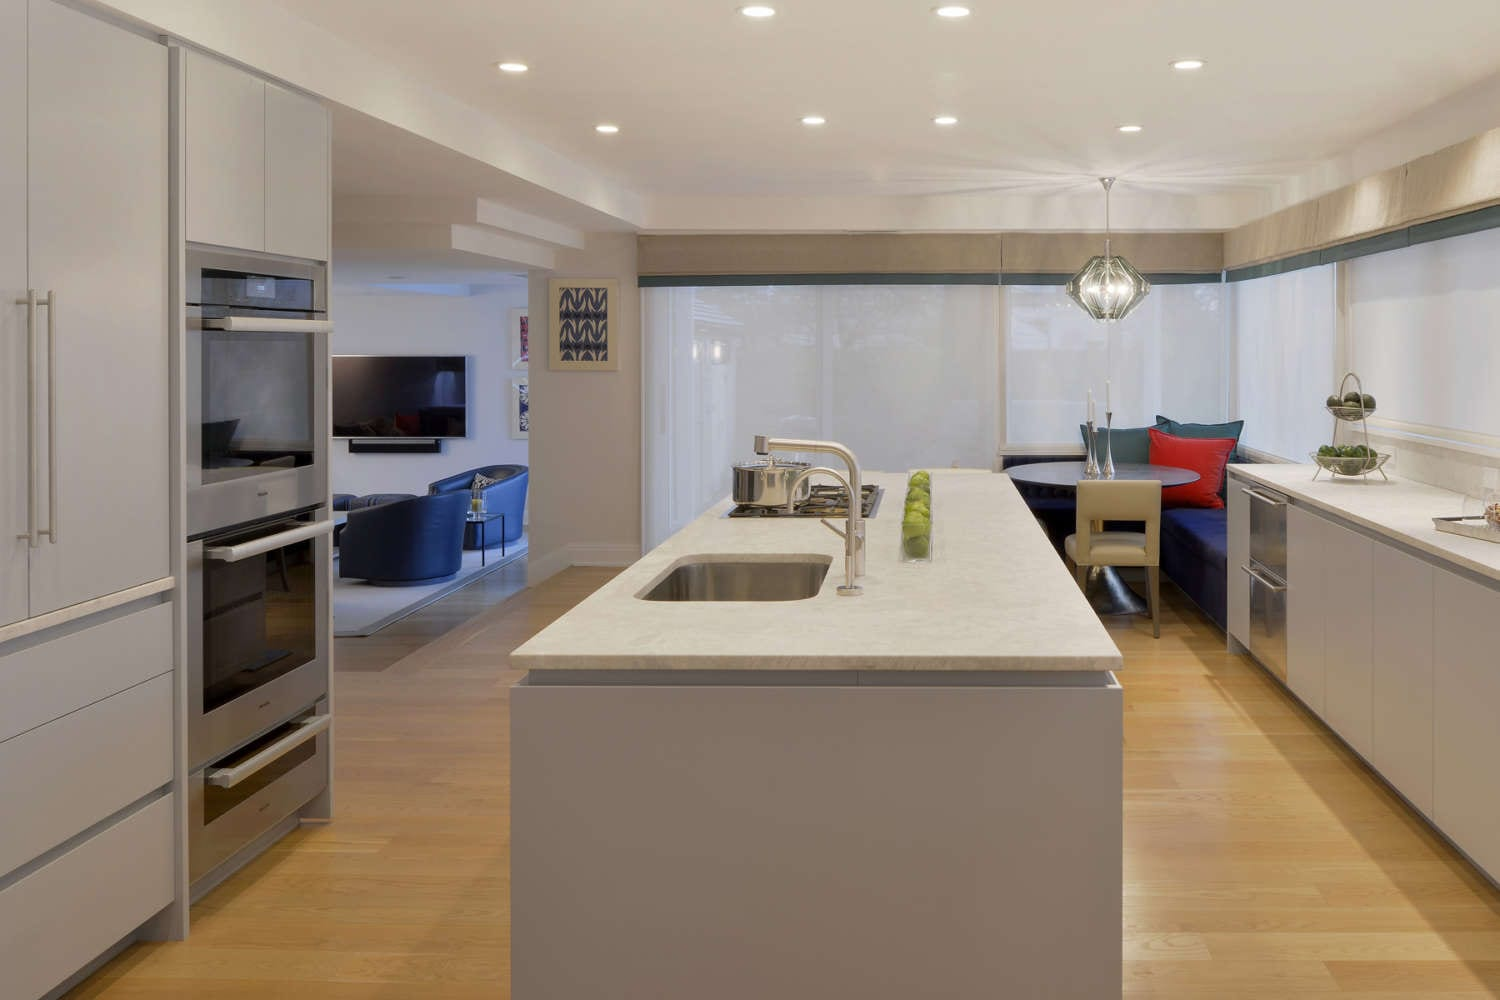 Light contemporary kitchen features a long rectangular island with light quartz countertop and a banquette area. Throught the kitchen there is oak hardwood flooring and fully custom Bilotta cabinetry with channel hardware in flat panel, frameless design painted Benjamin Moore Pigeon Grey. Design by Randy O'Kane, CKD, of Bilotta Kitchens.